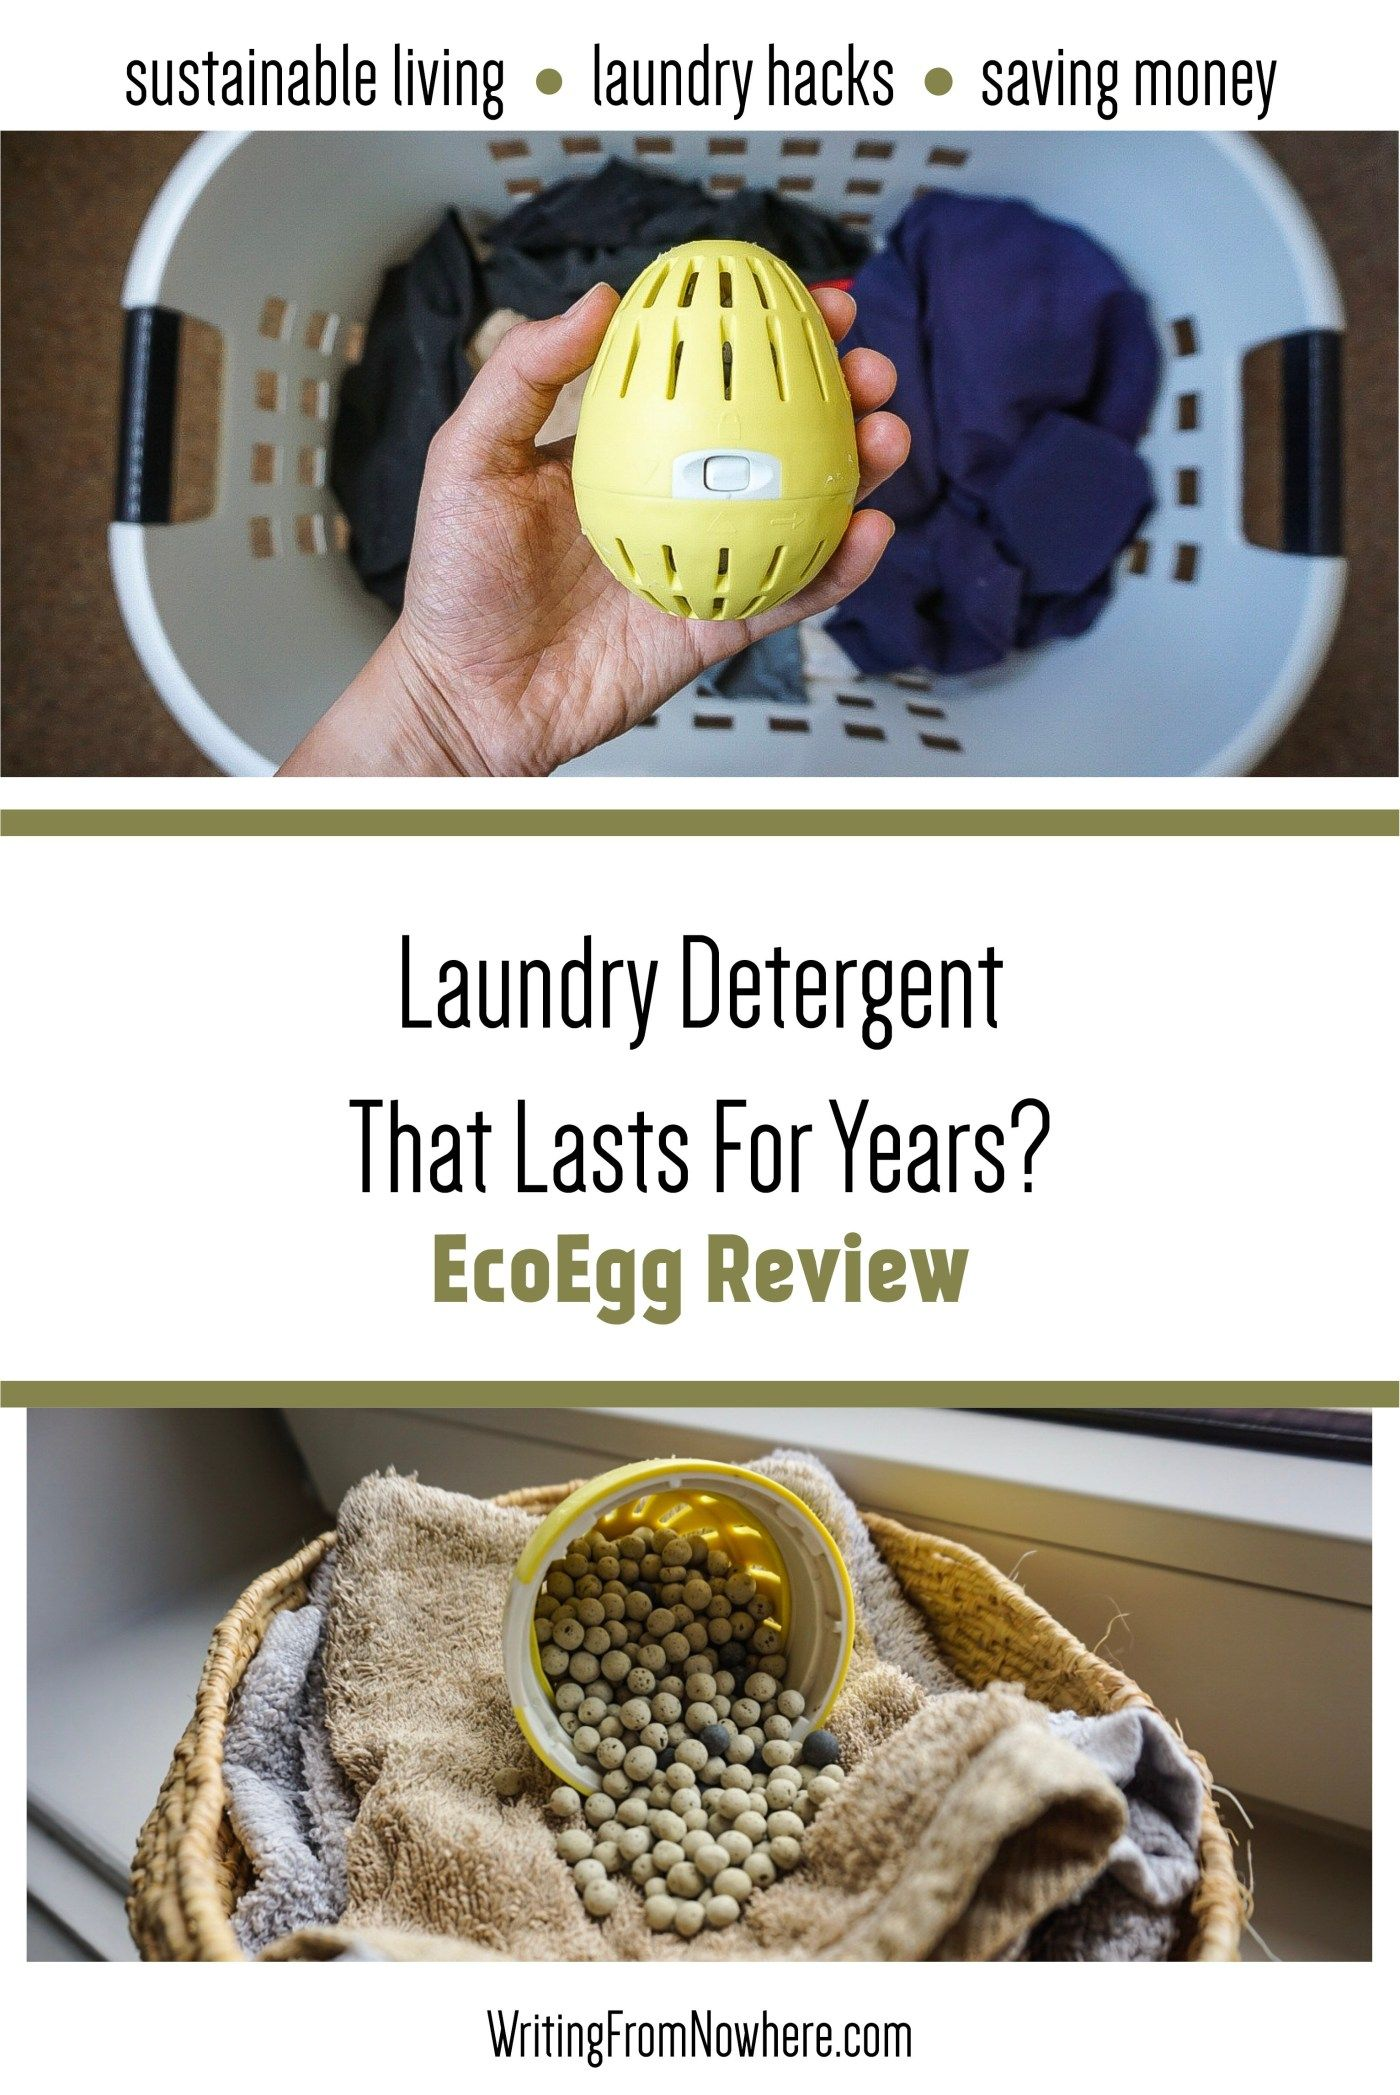 Ecoegg Review From A Laundry Lover Sustainable Living Laundry